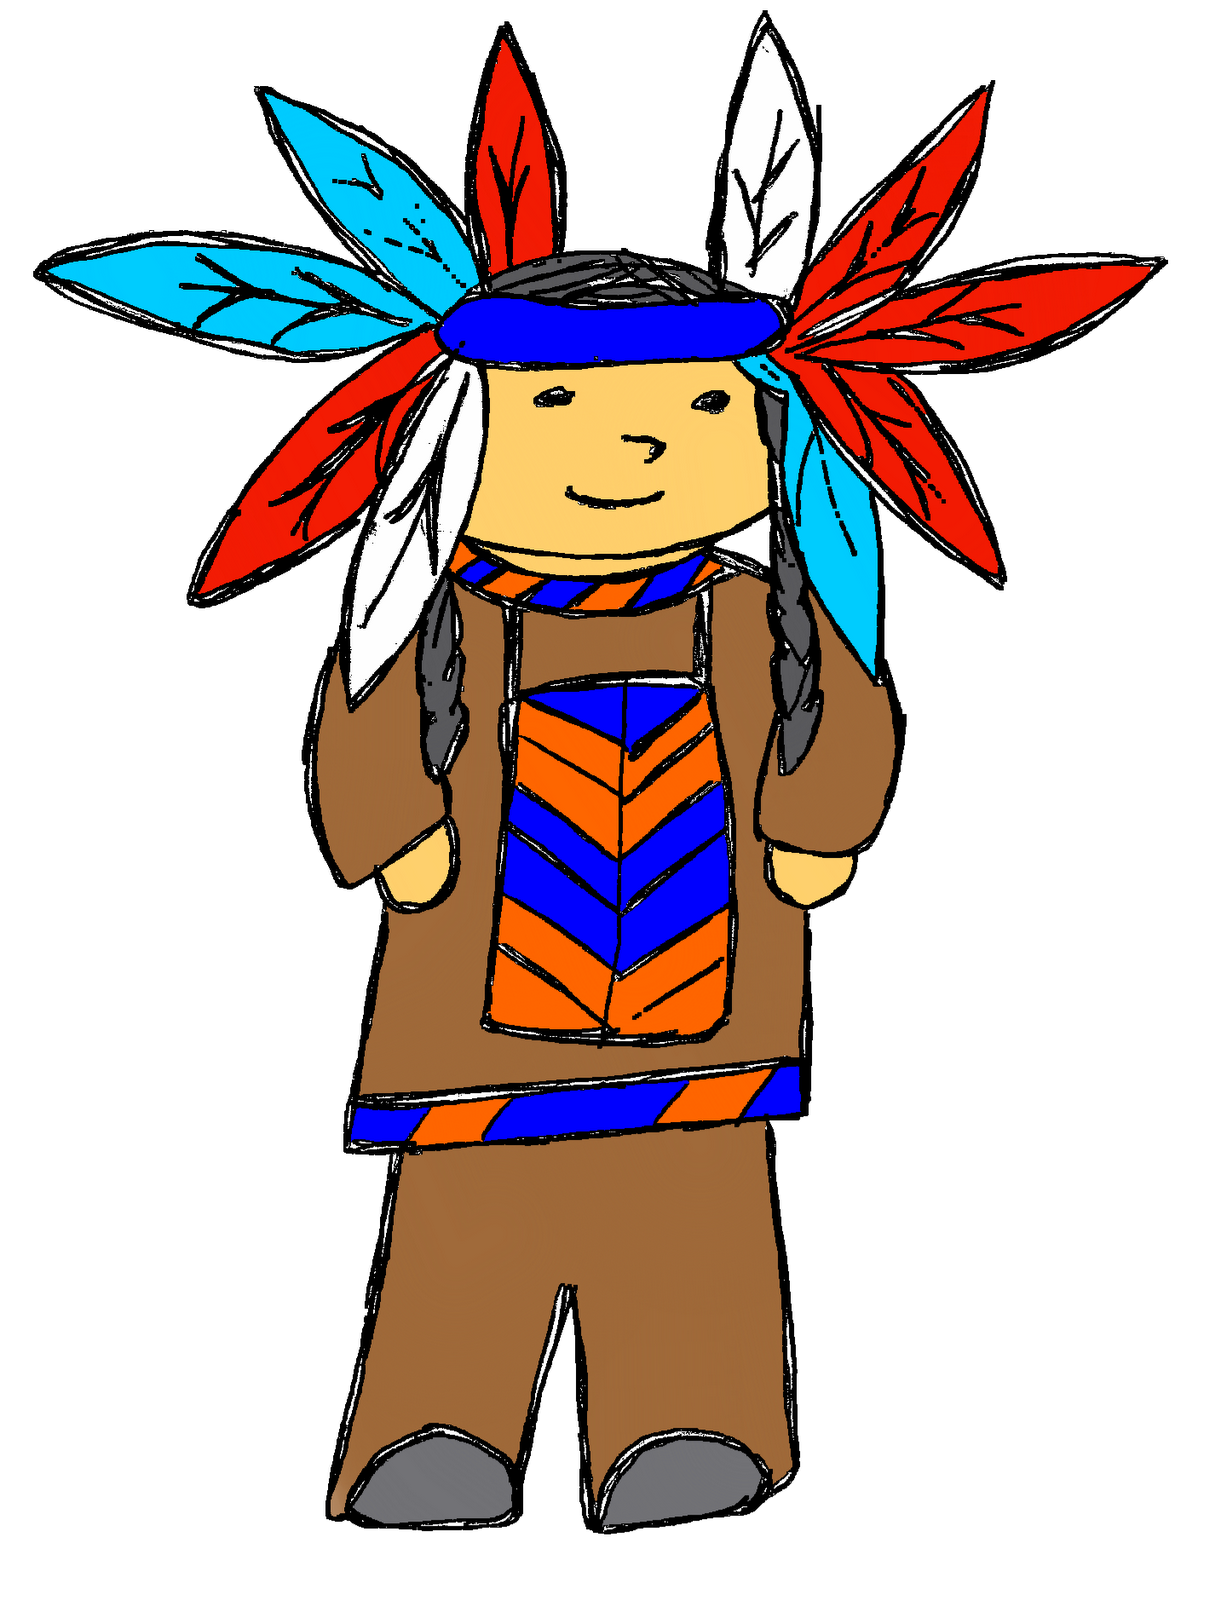 First thanksgiving clipart graphic royalty free library Indian Chief Clipart - clipart graphic royalty free library